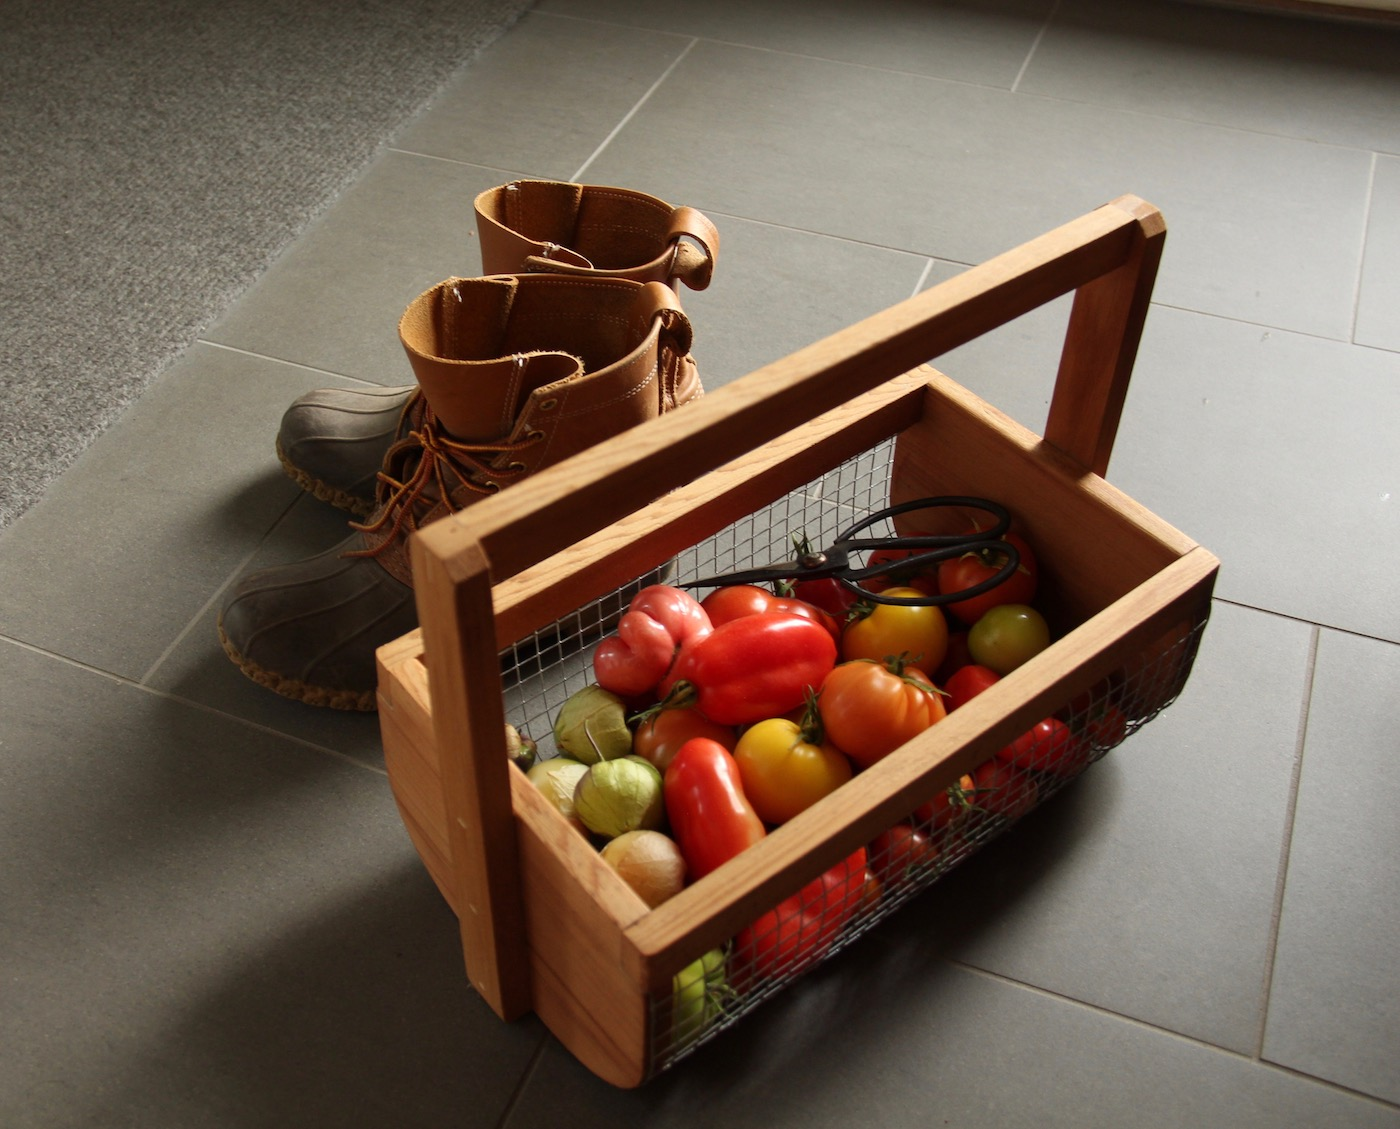 The best gifts for gardeners are ones they'll use forever! These harvest baskets, classic watering cans, and other high-quality garden goods are the best gifts for gardeners on your list! #bestgiftsforgardeners #giftsforgardeners #gardengifts #gardengiftguide